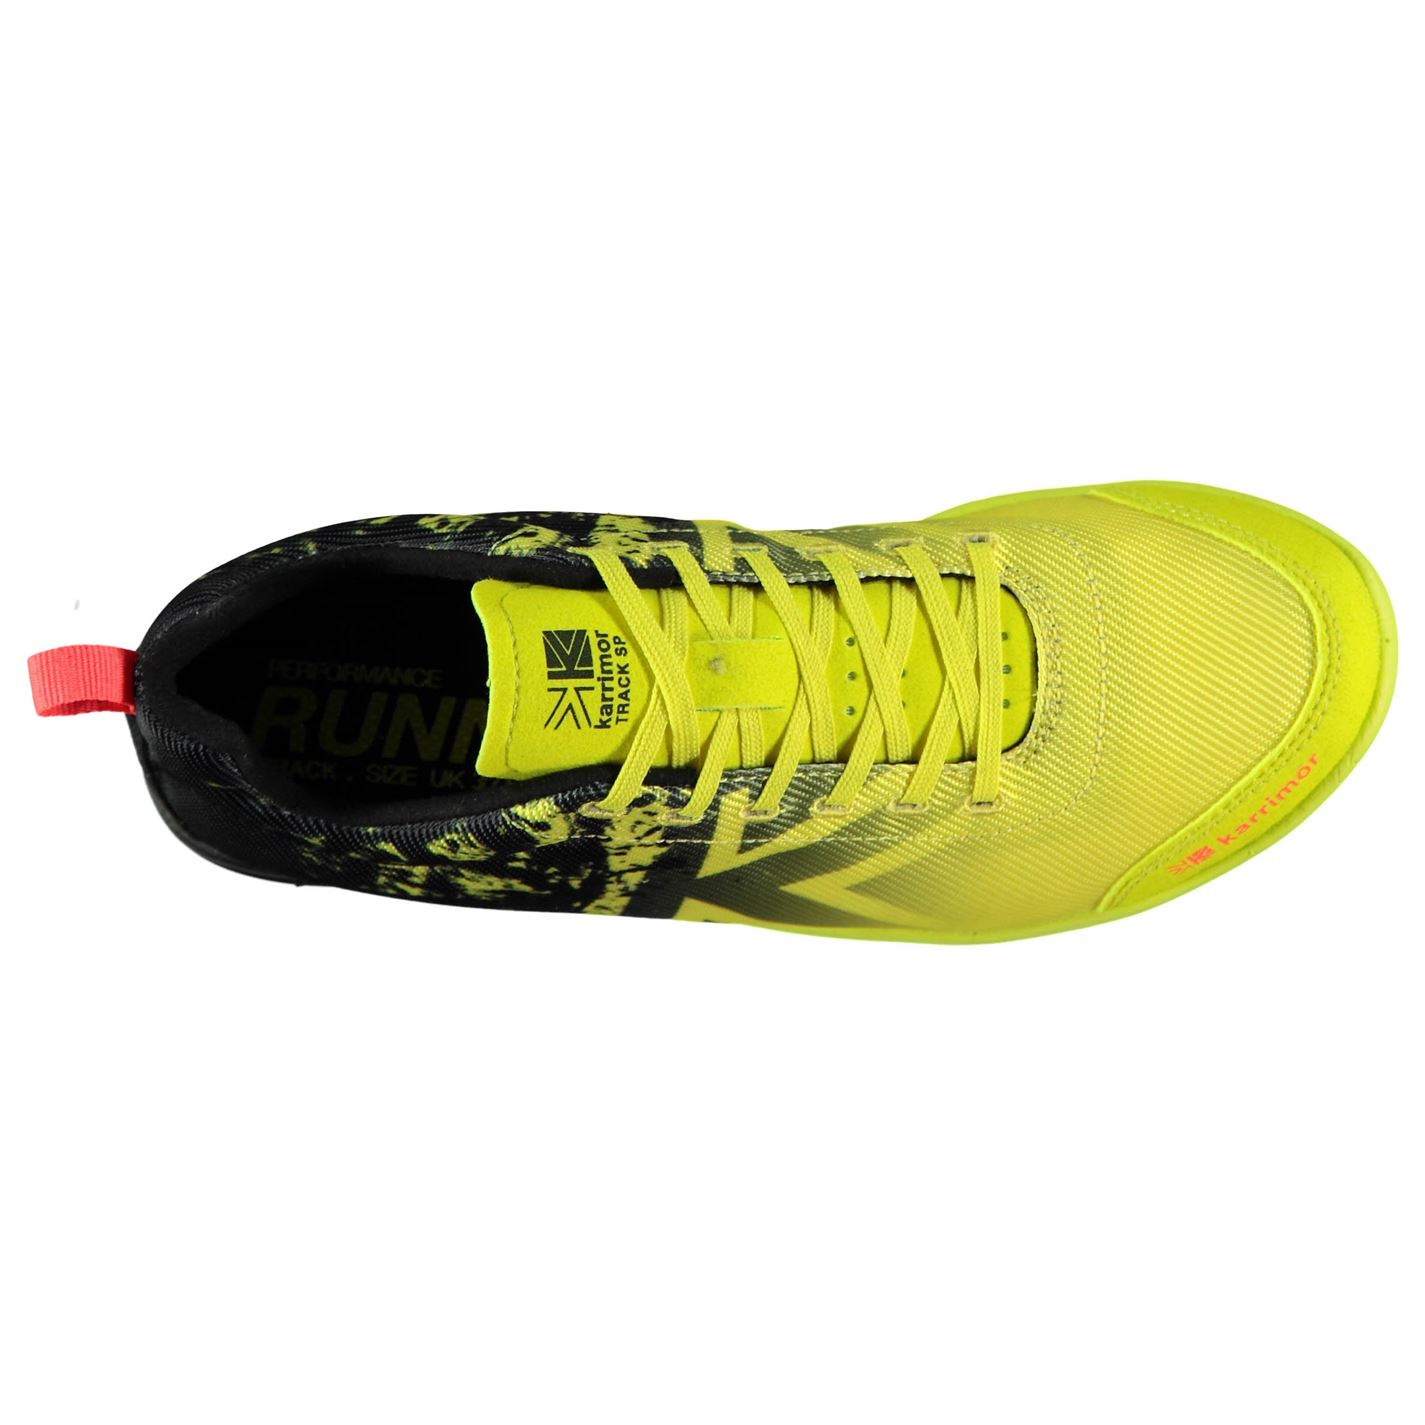 1f5054b091d0 Karrimor Kids Junior Running Spikes 4 Track Shoes Lace Up Padded ...